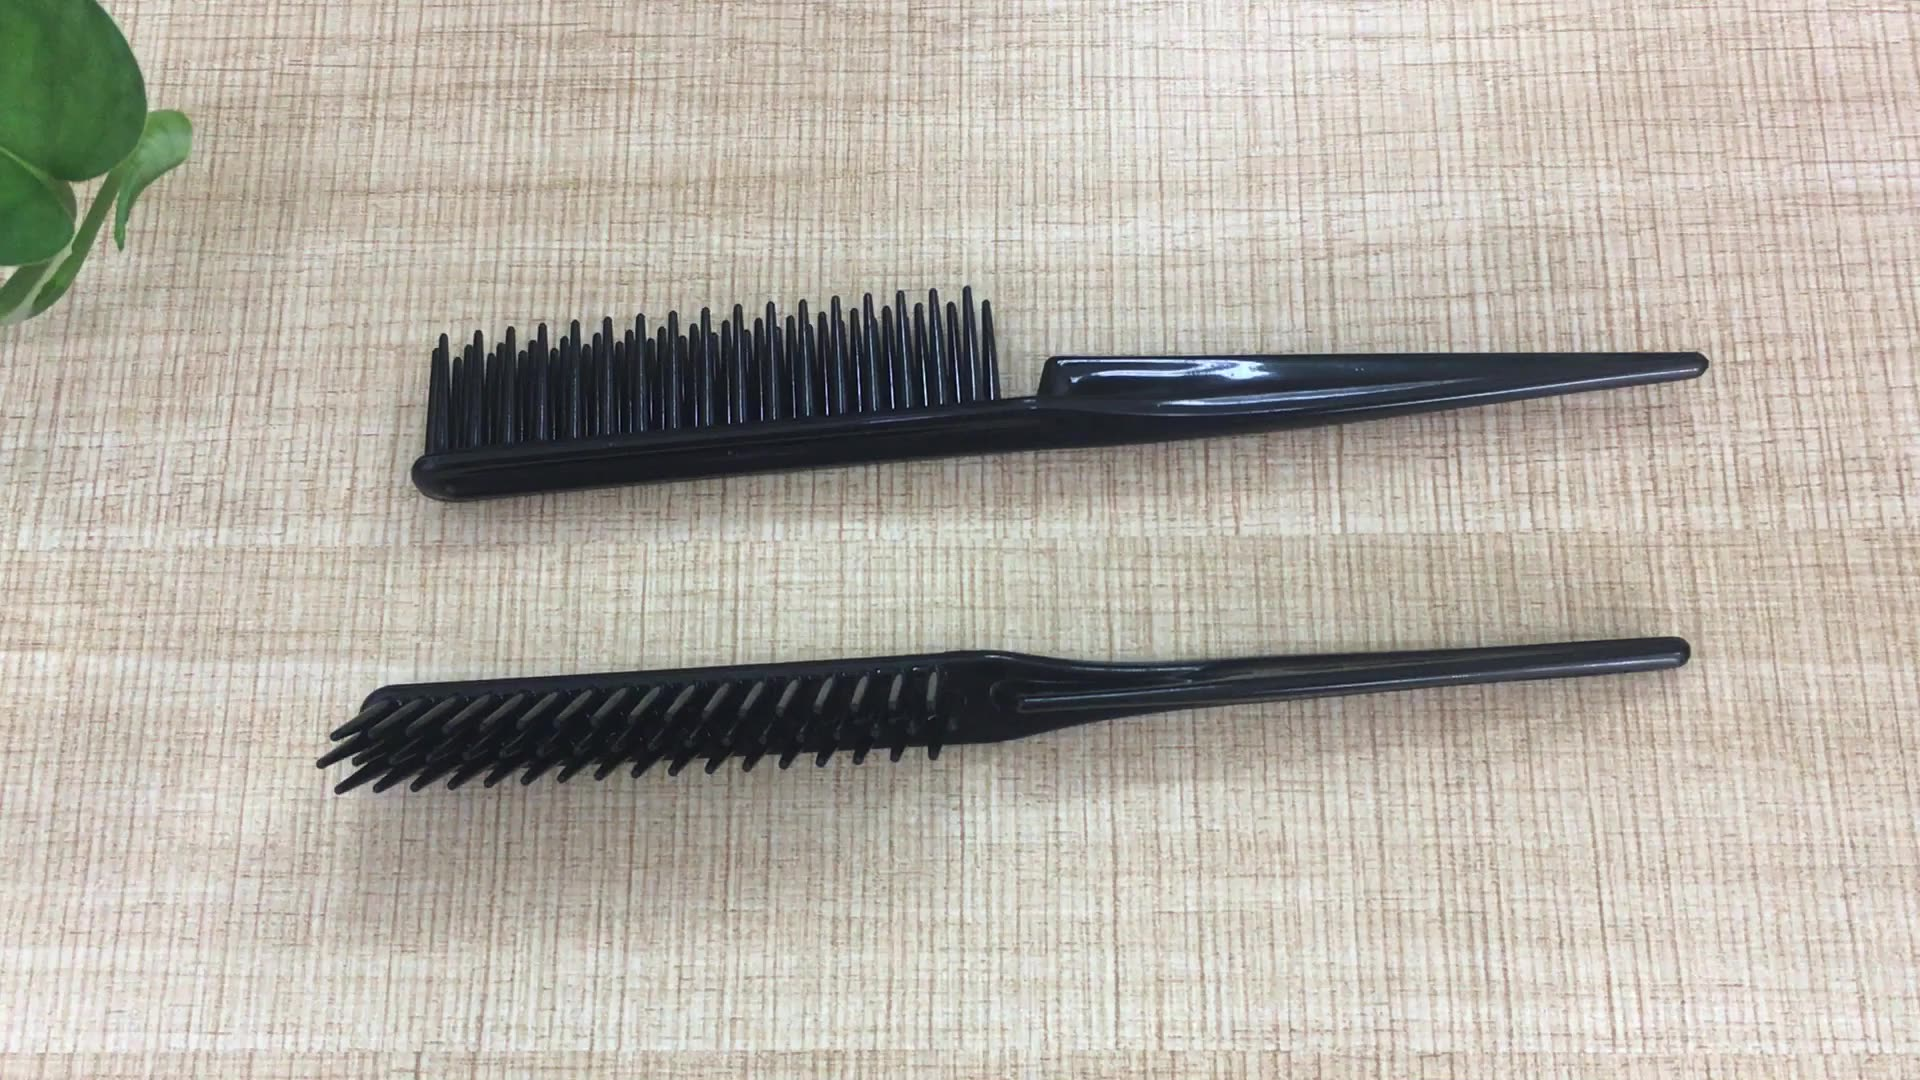 Salon barber use Multi function 3 Rows Styler Hair Brush Comb